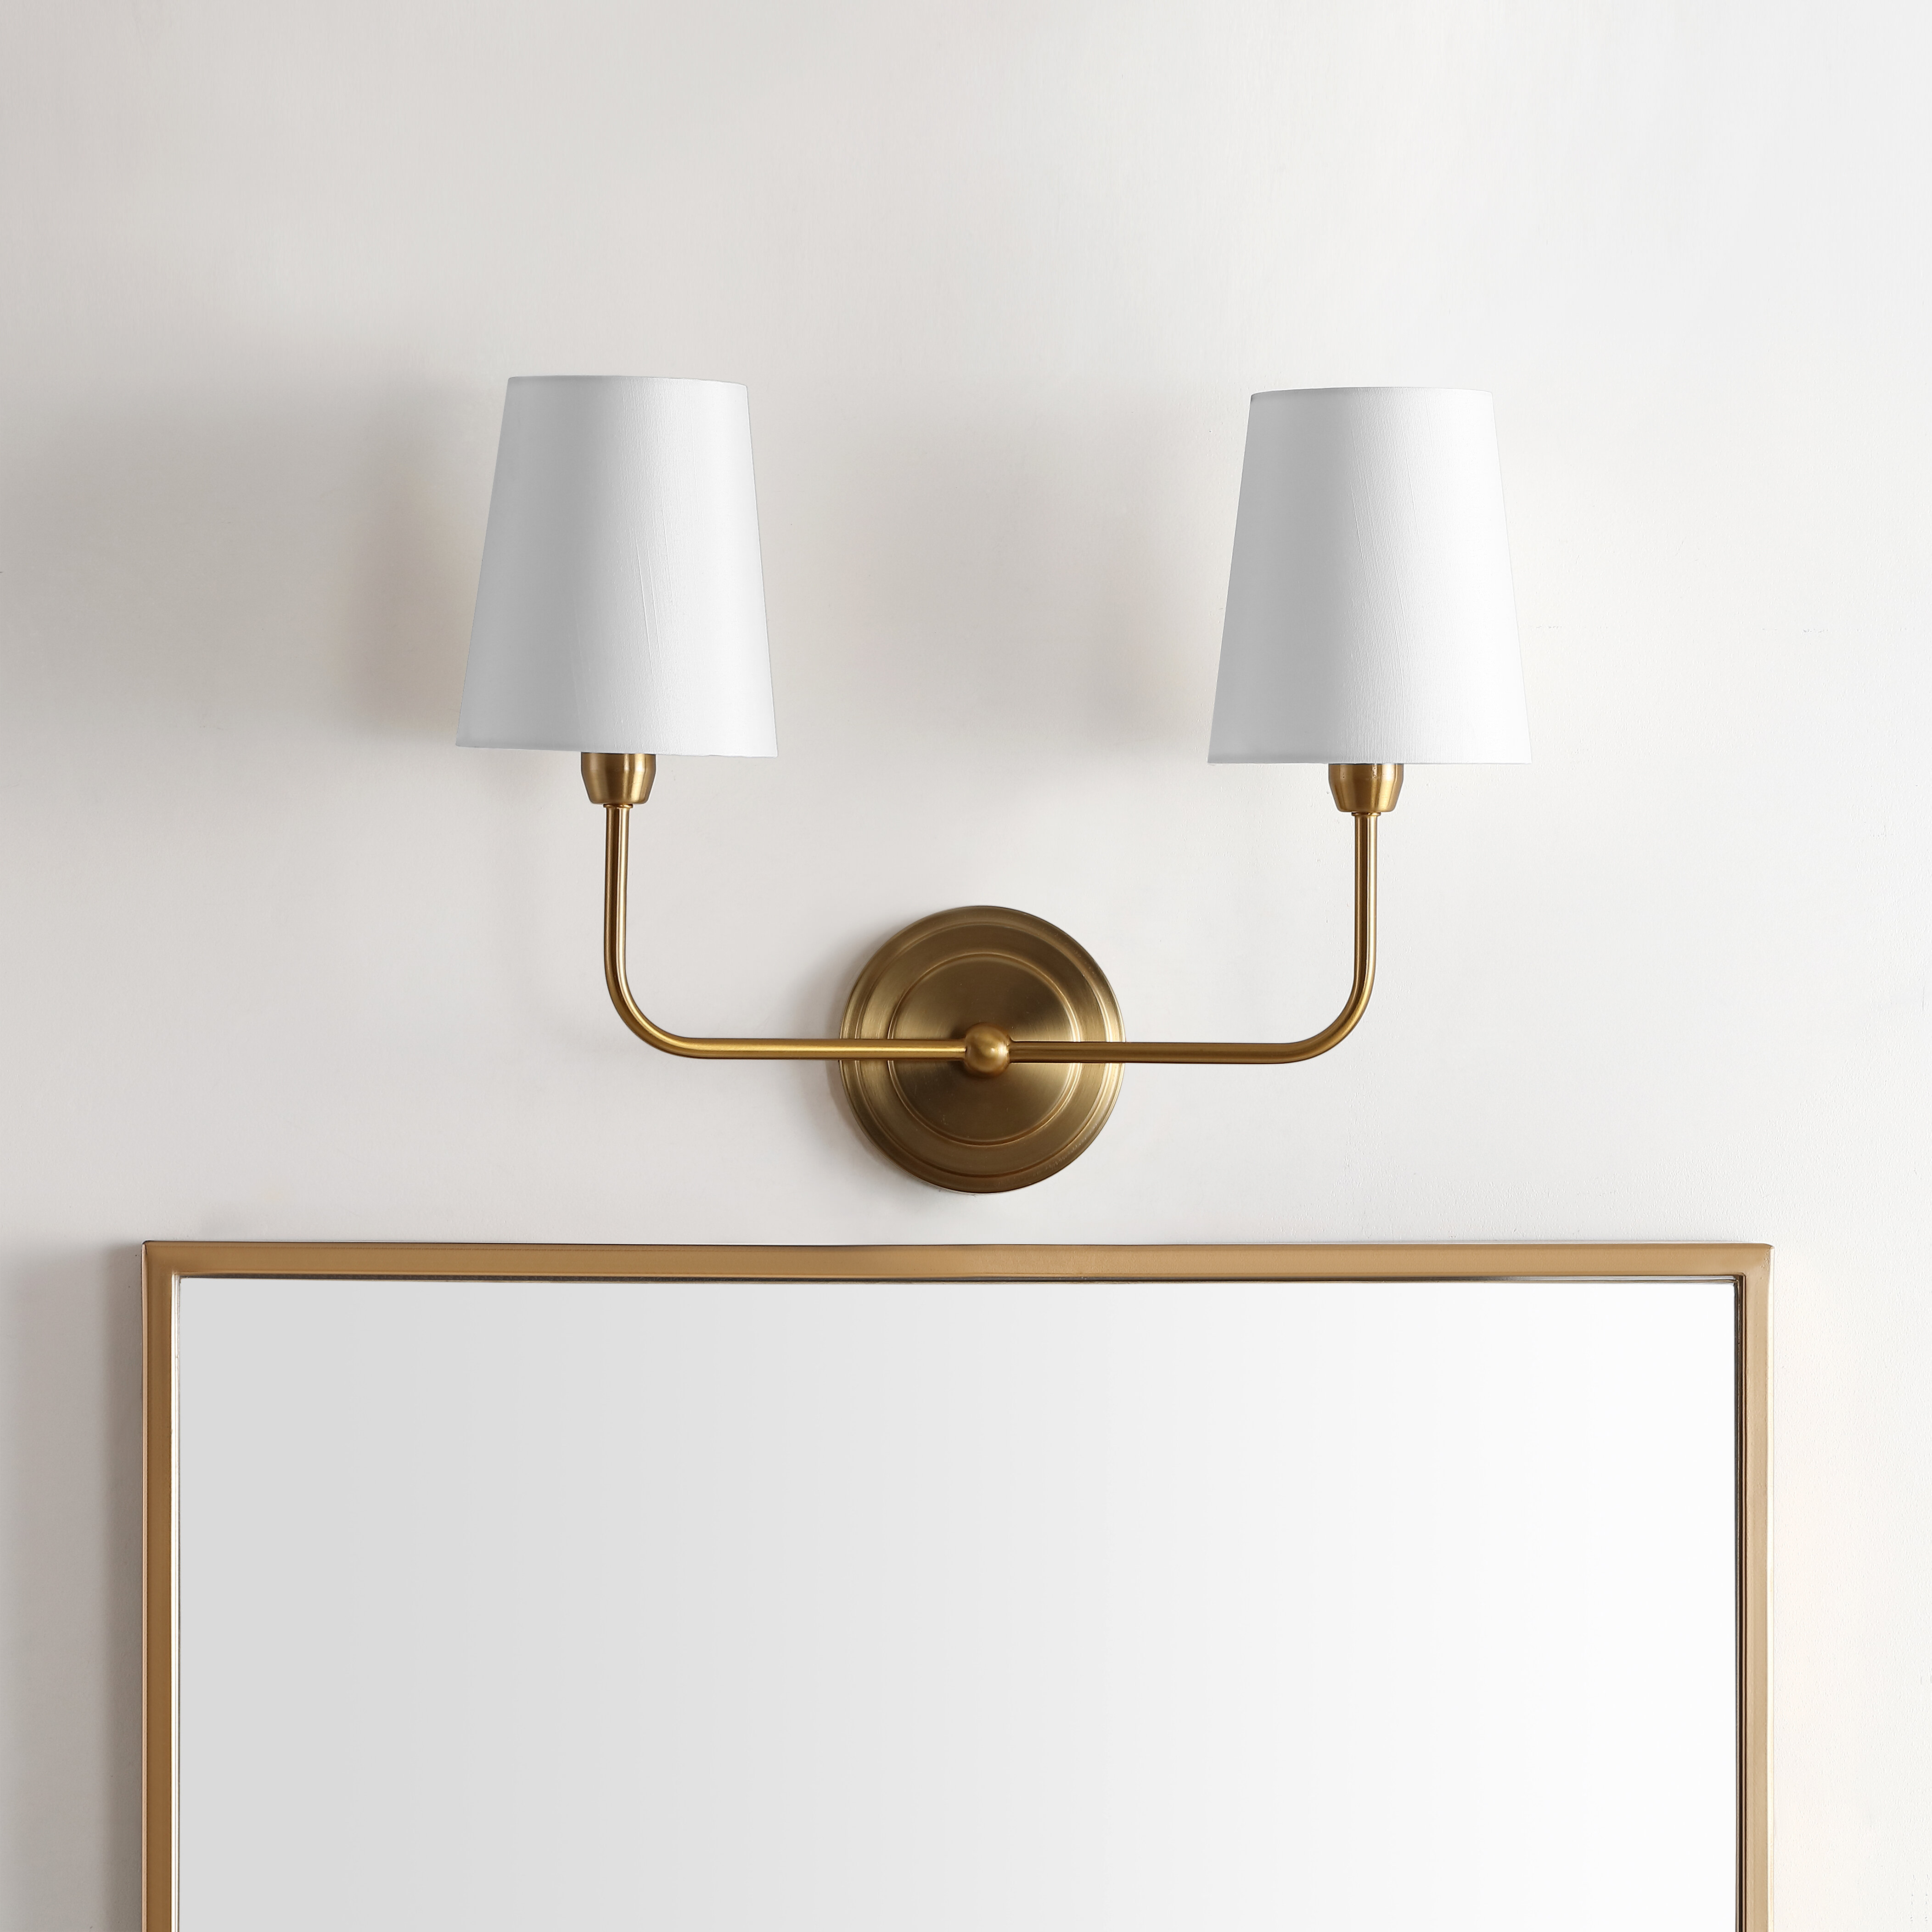 2 Armed Wall Sconces You Ll Love In 2021 Wayfair